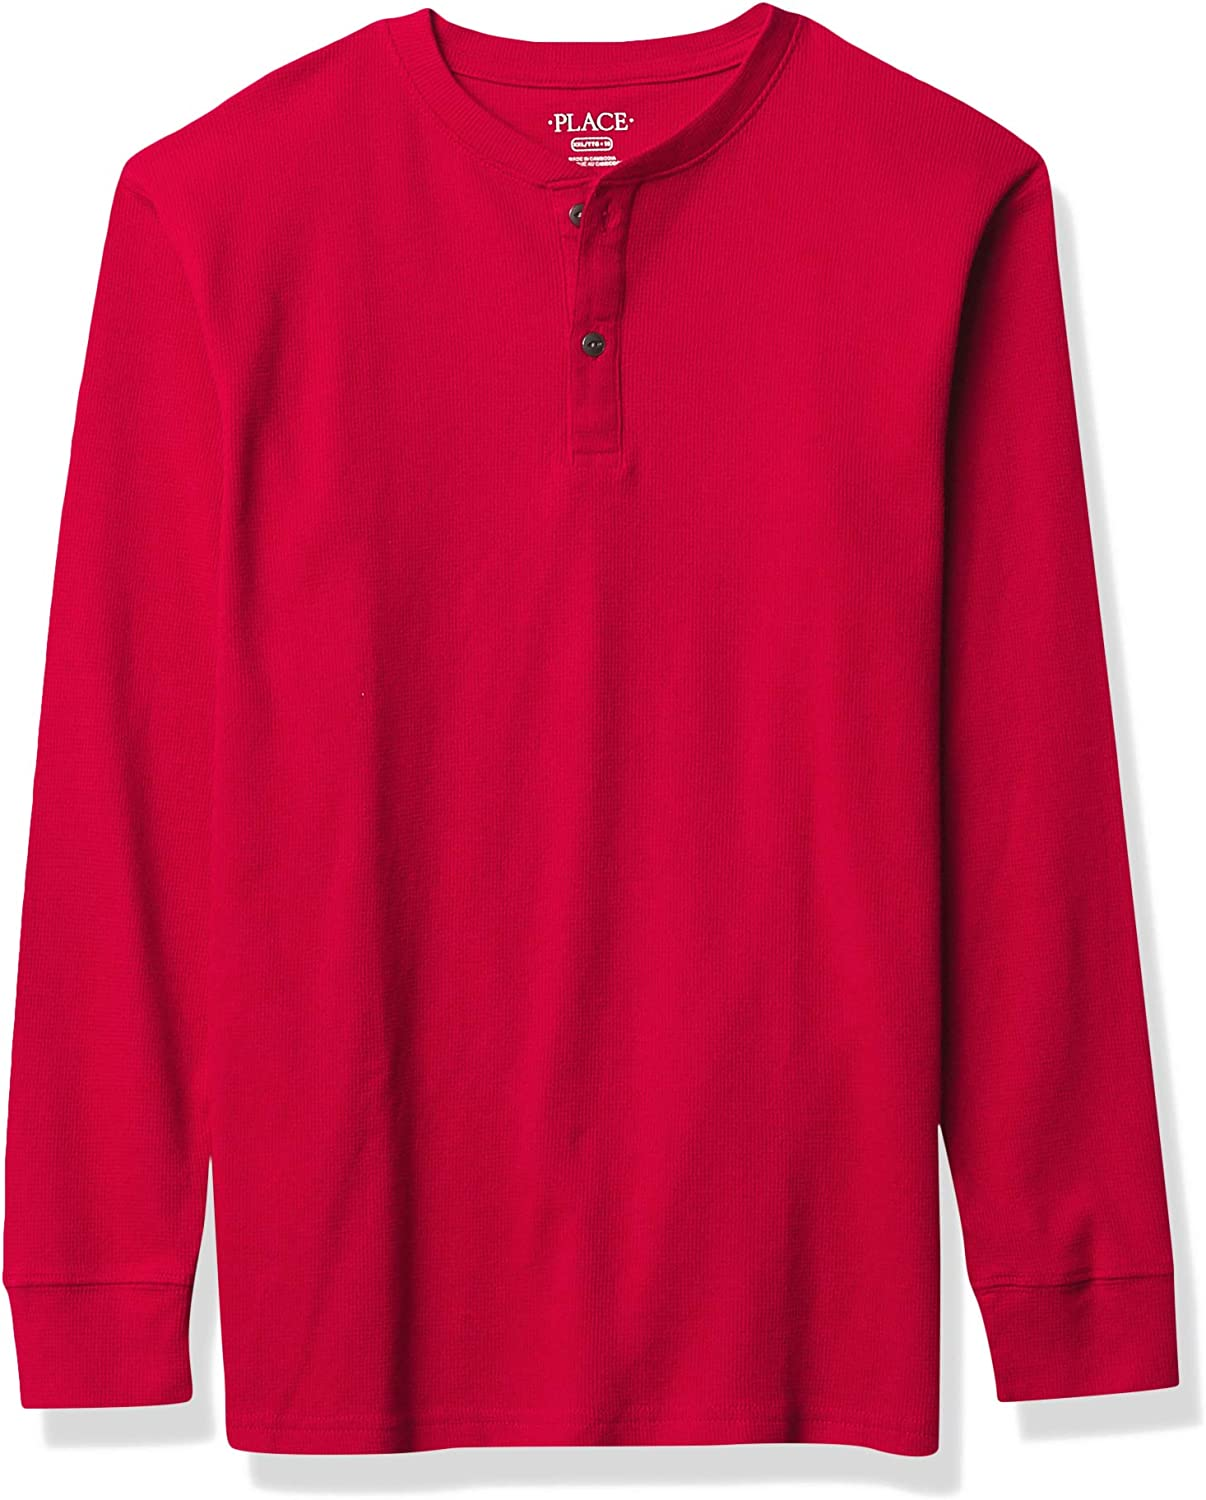 The Children's Place Boys' Thermal Henley Top